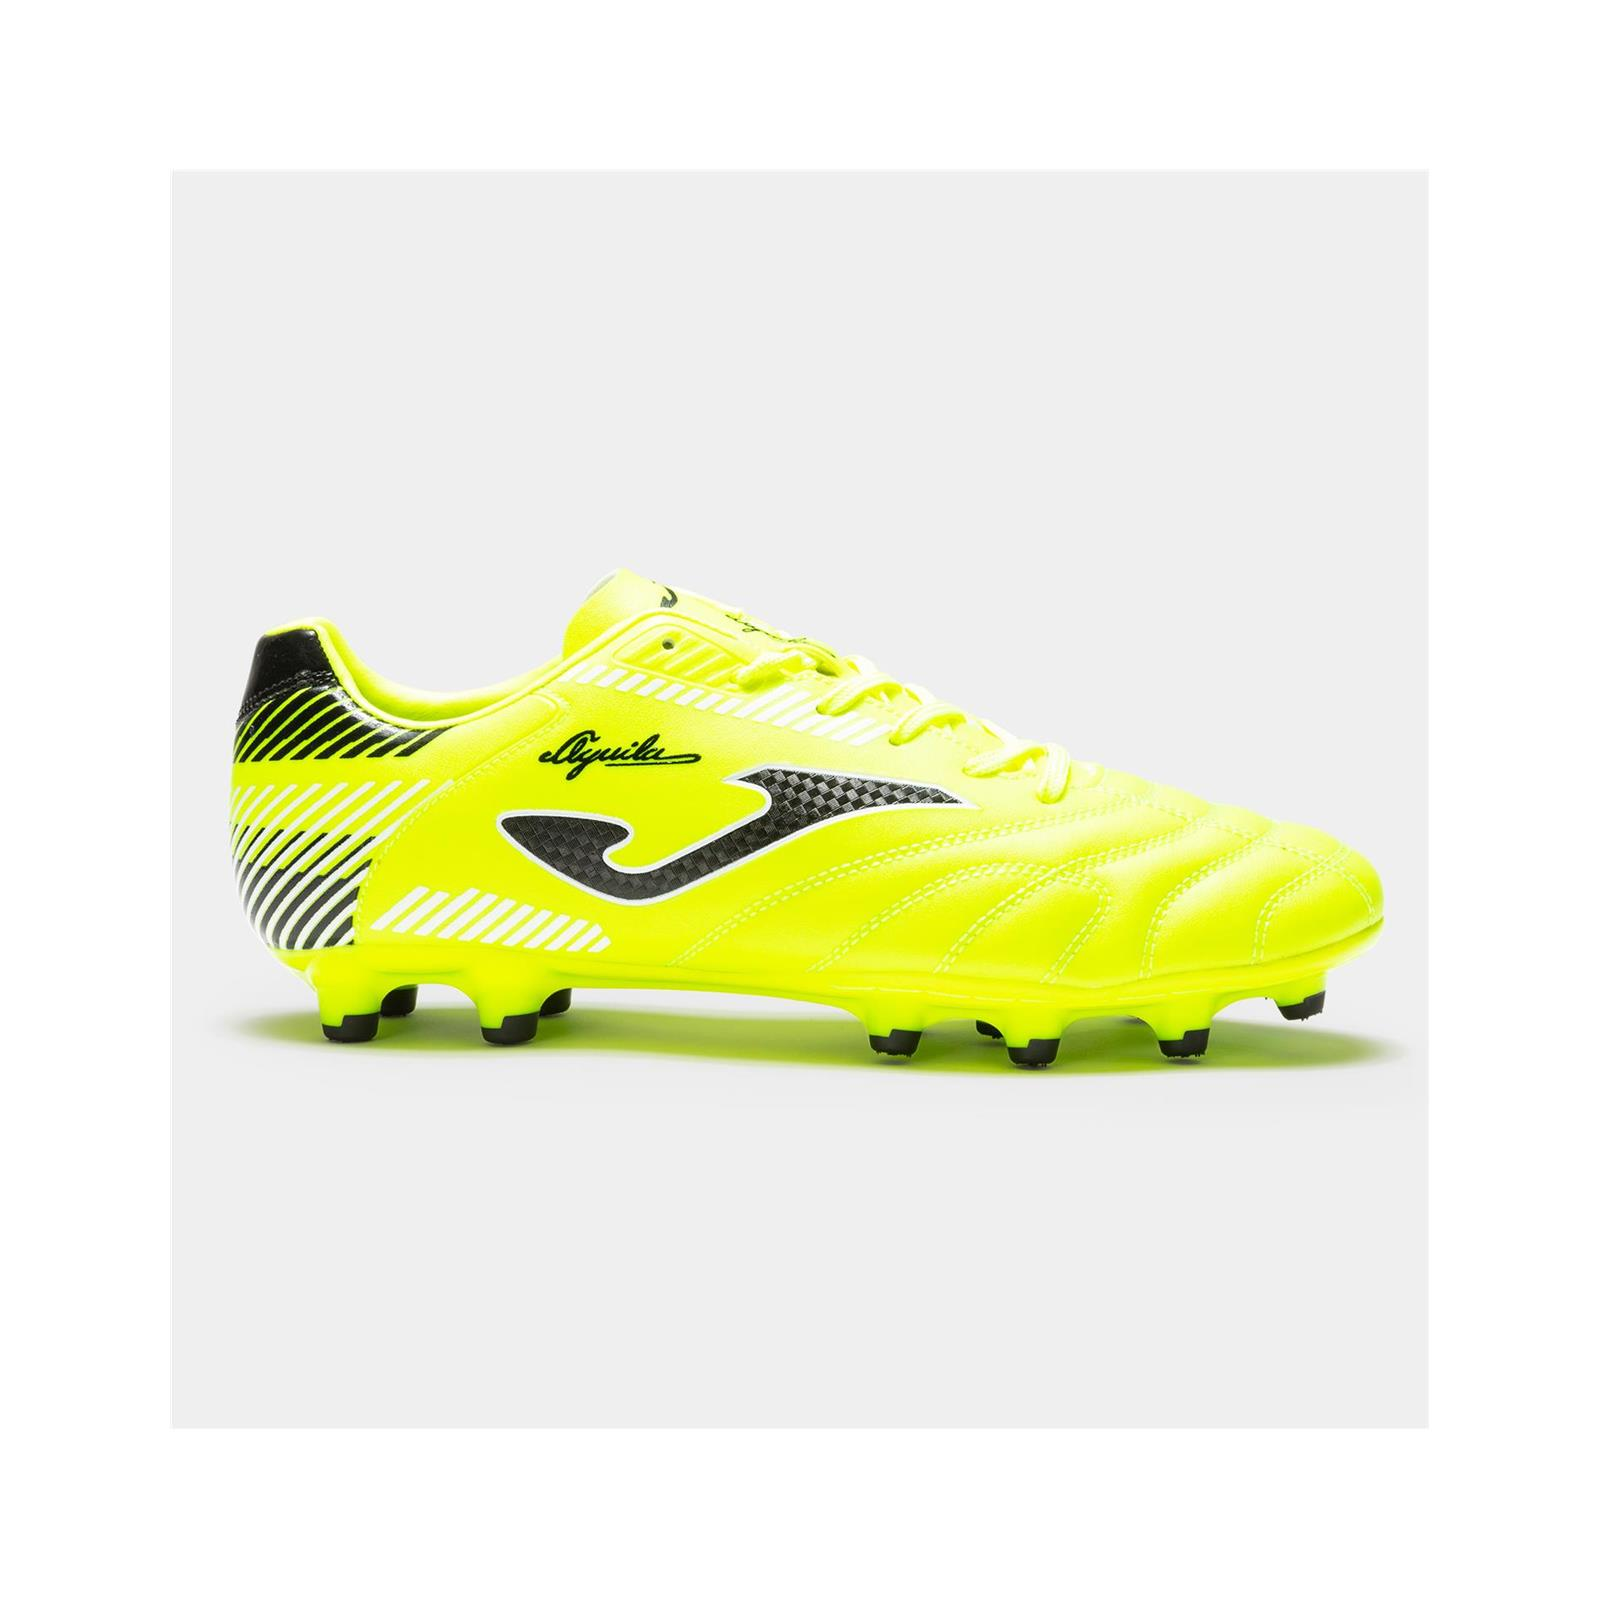 JOMA Scarpa Aguila 2011 Firm Ground (40.5 - GIALLO FLUO)